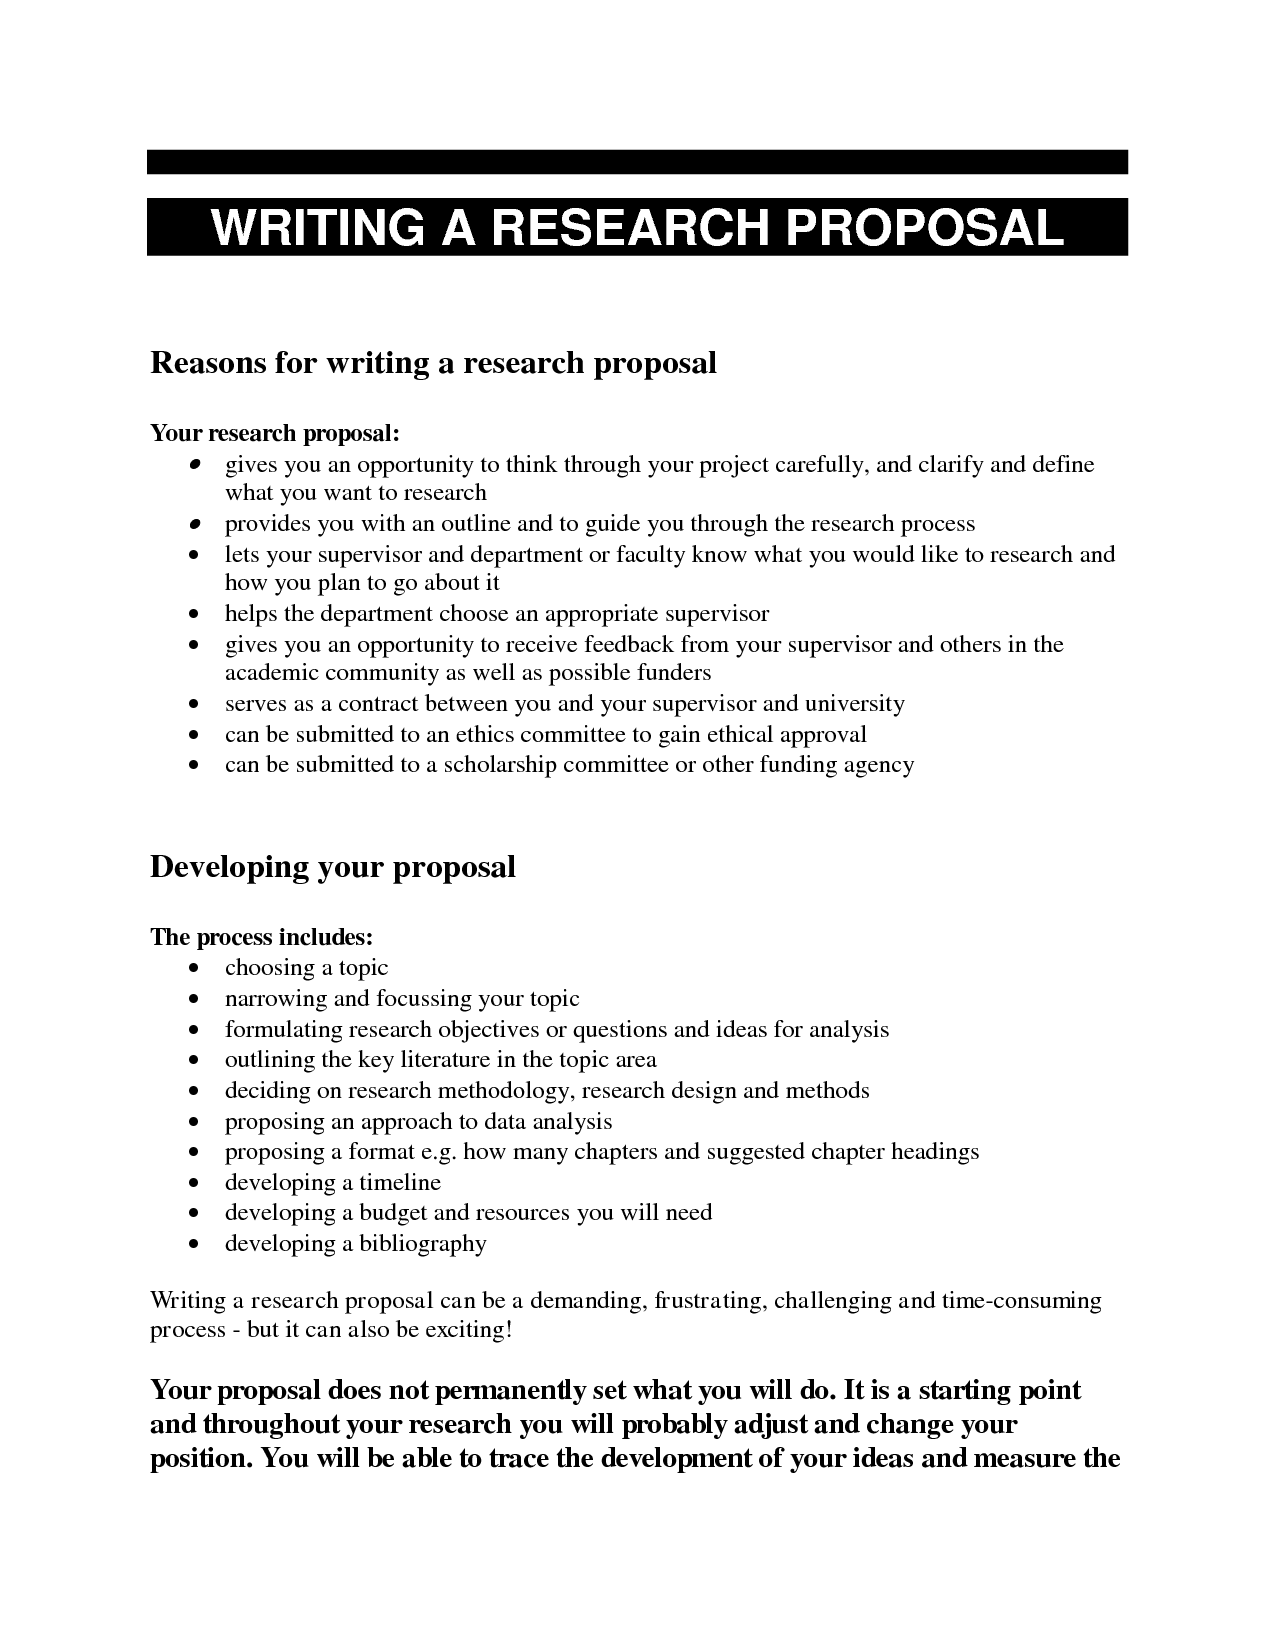 Proposal essay topics ideas